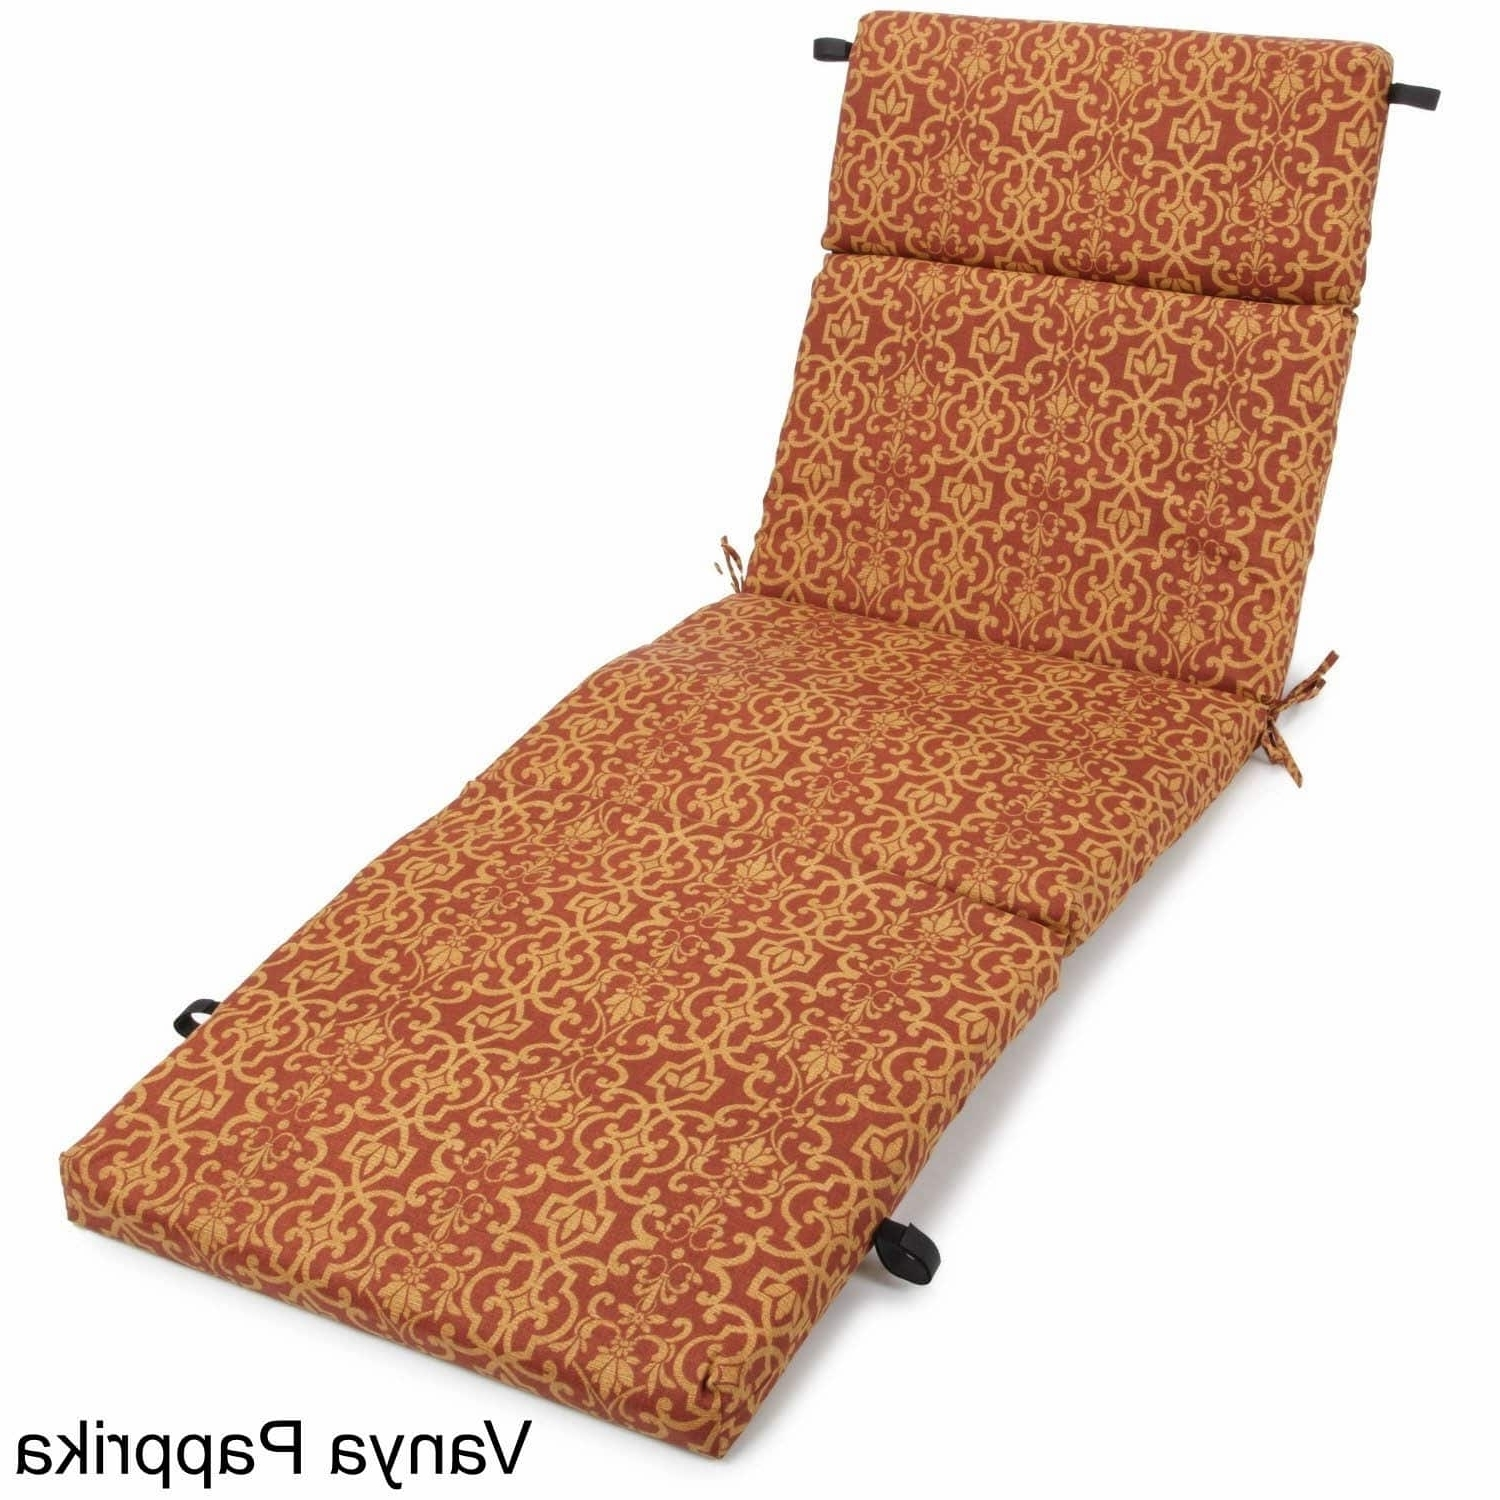 Chaise Lounge Cushions Within Most Recently Released Outdoor Chaise Lounge Cushion – Free Shipping Today – Overstock (View 14 of 15)